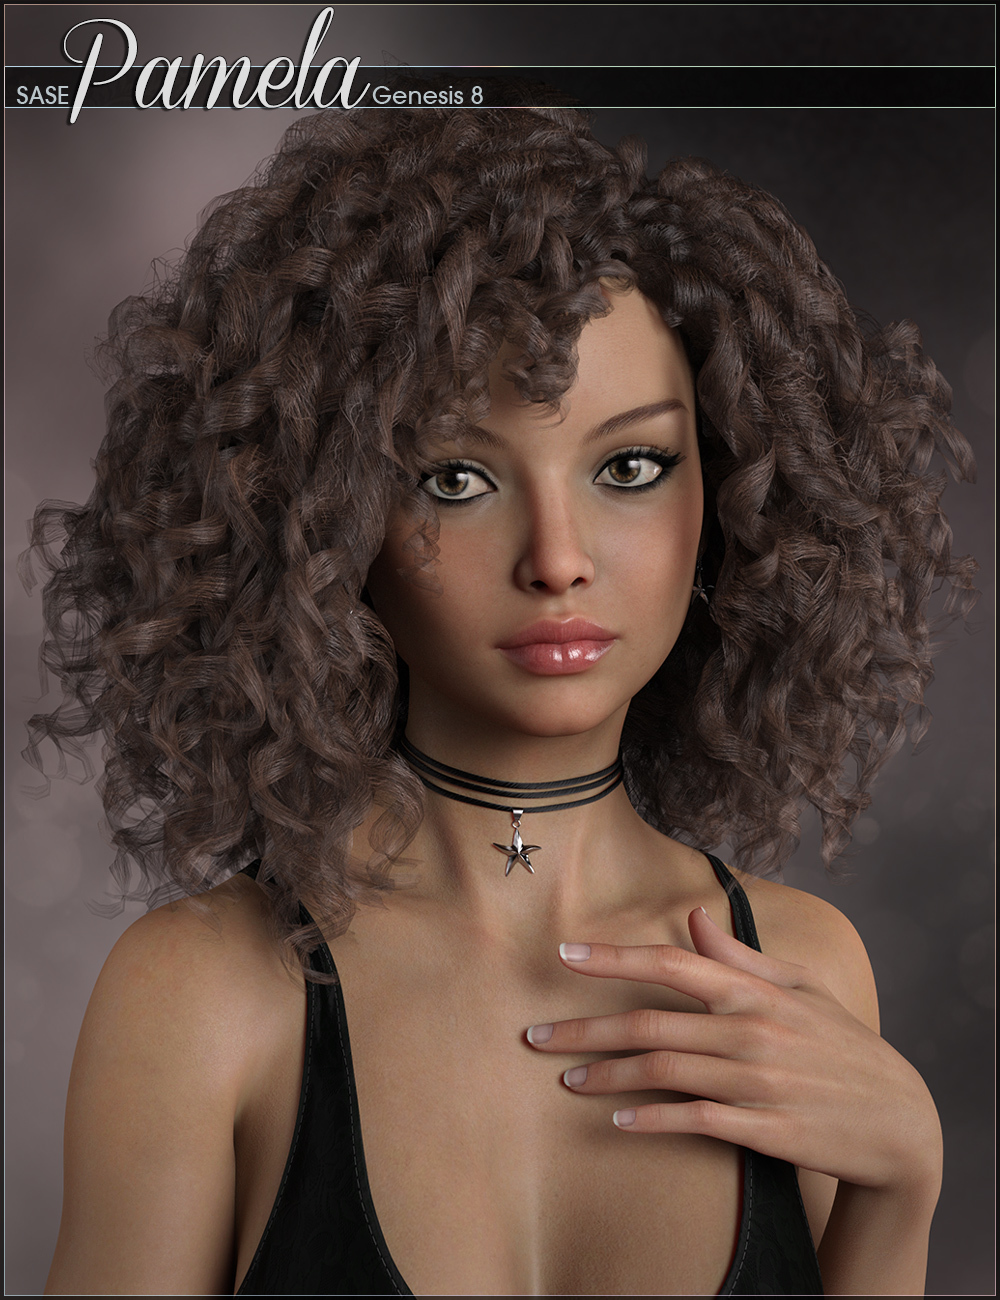 SASE Pamela for Genesis 8 by Sabby